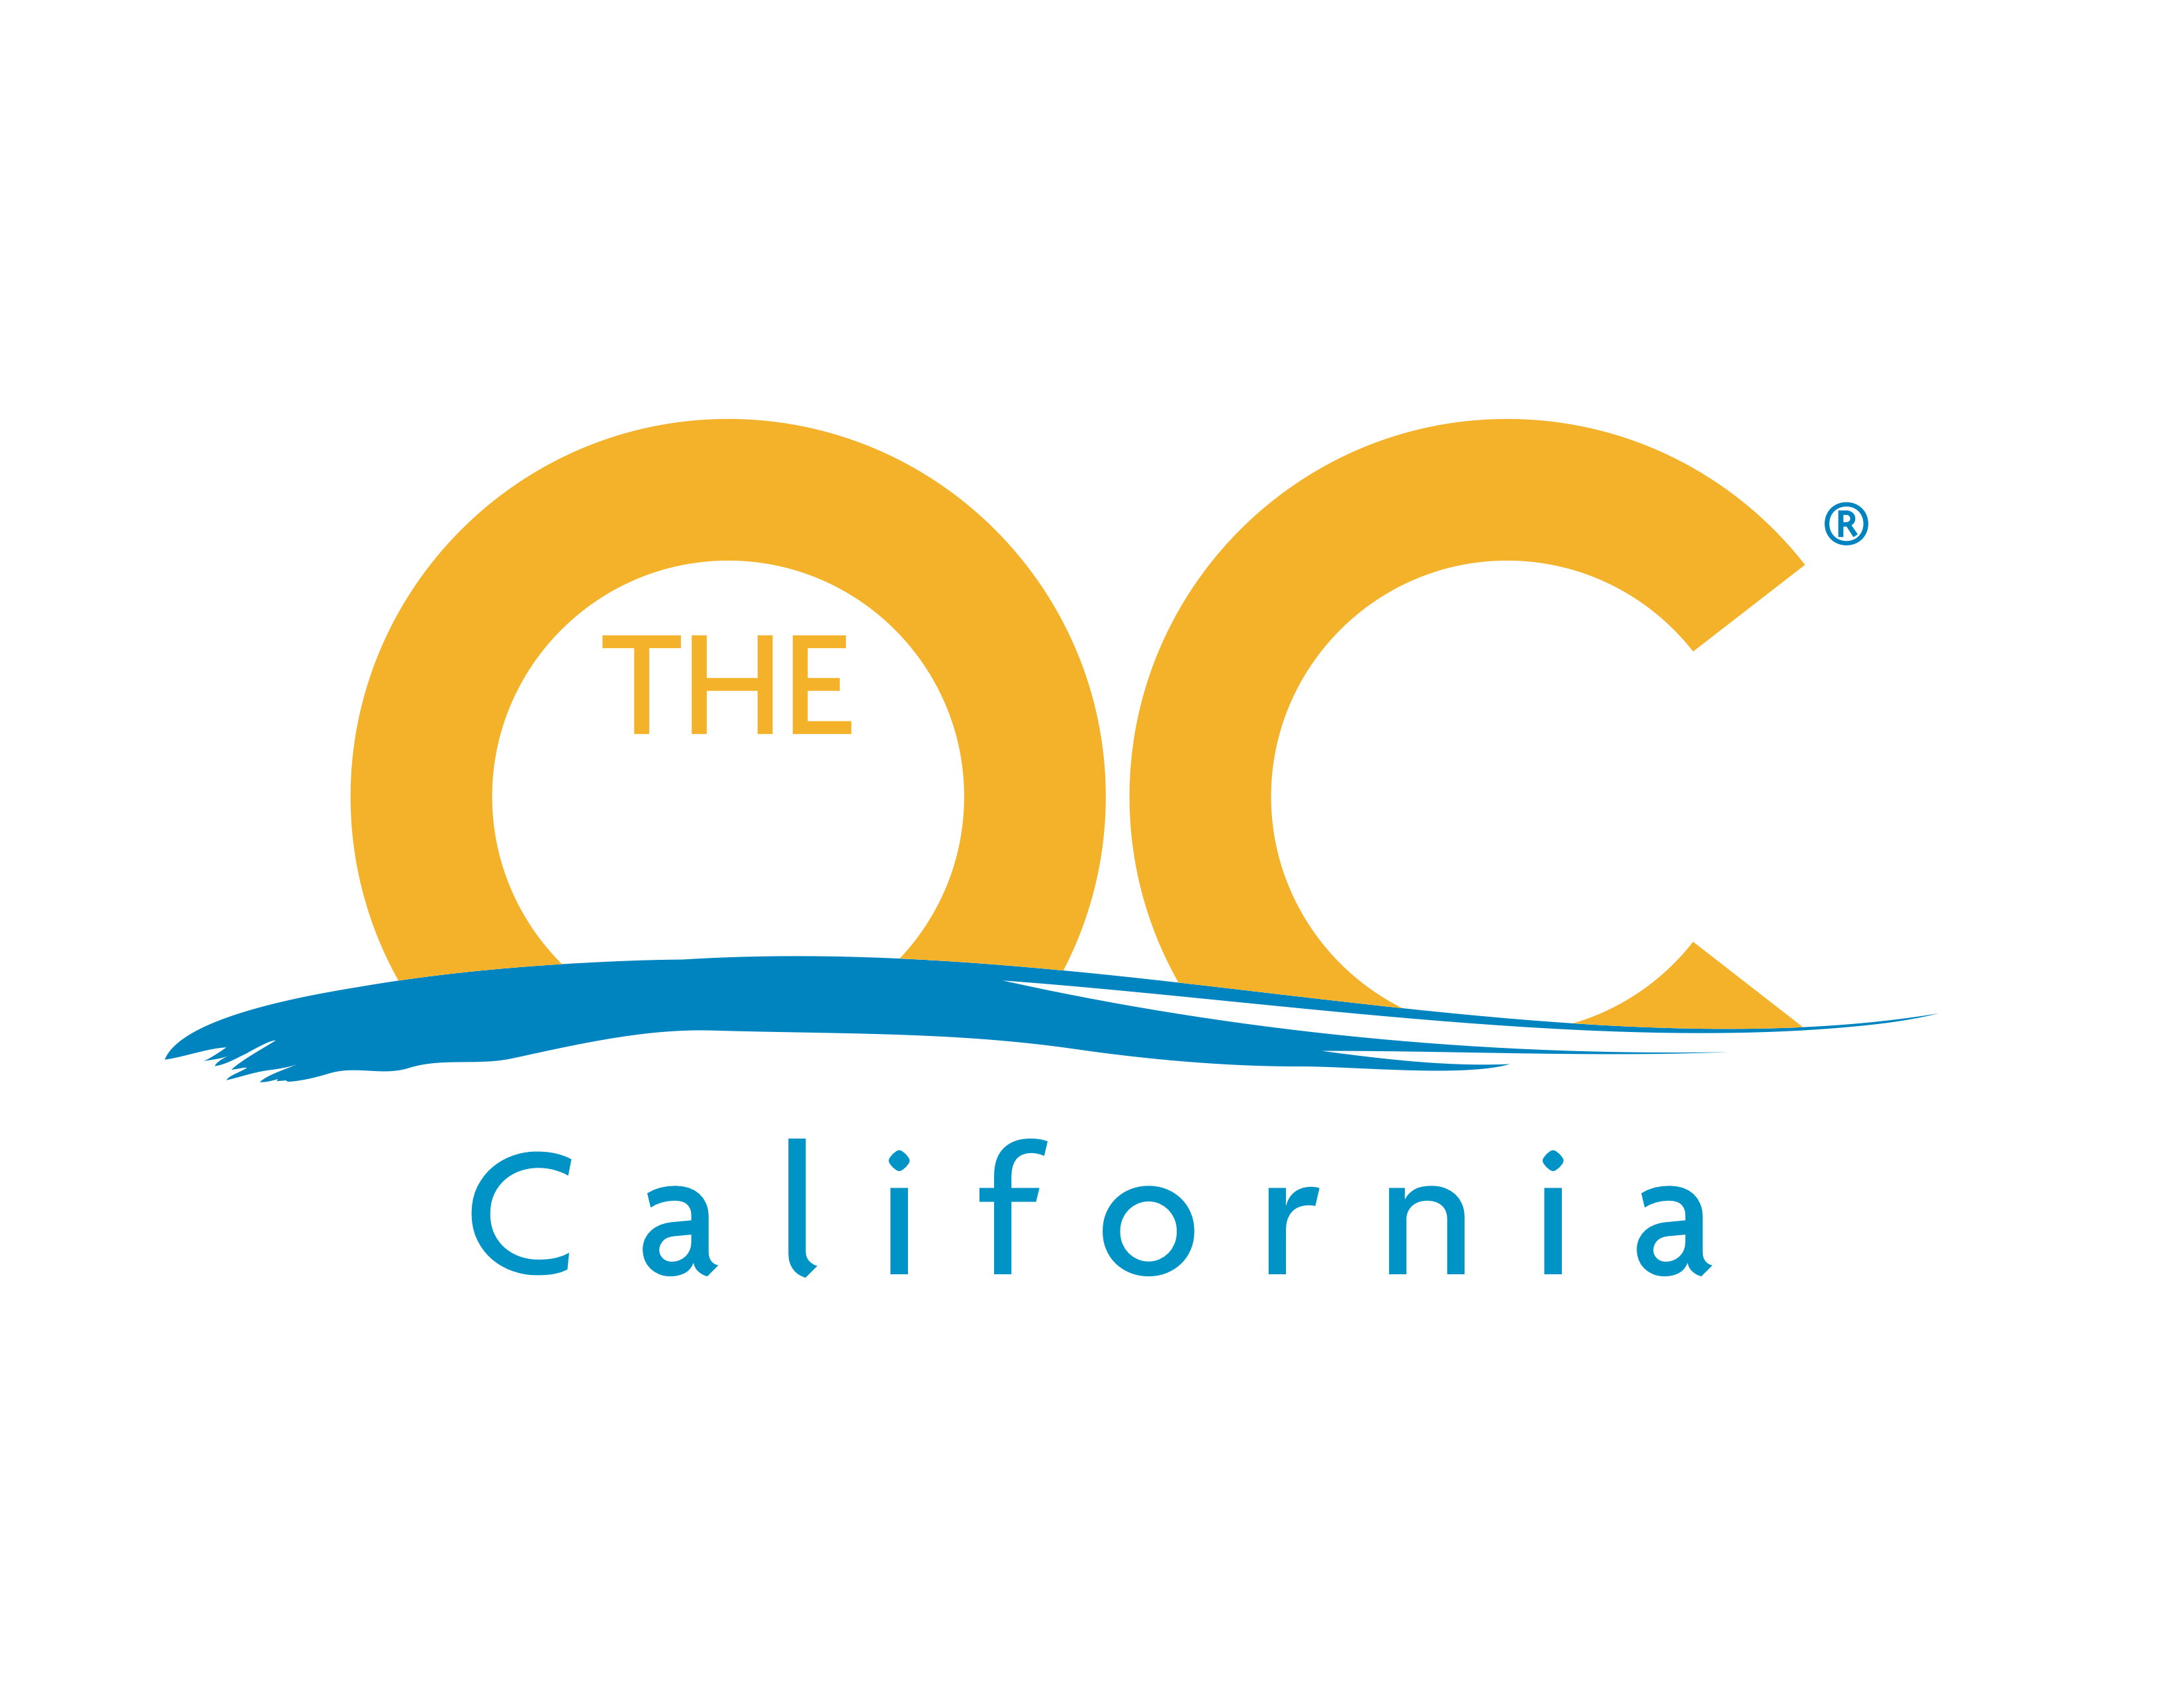 2017 Jet Set Alert Why The Oc Is Your Next Luxury Travel Stop